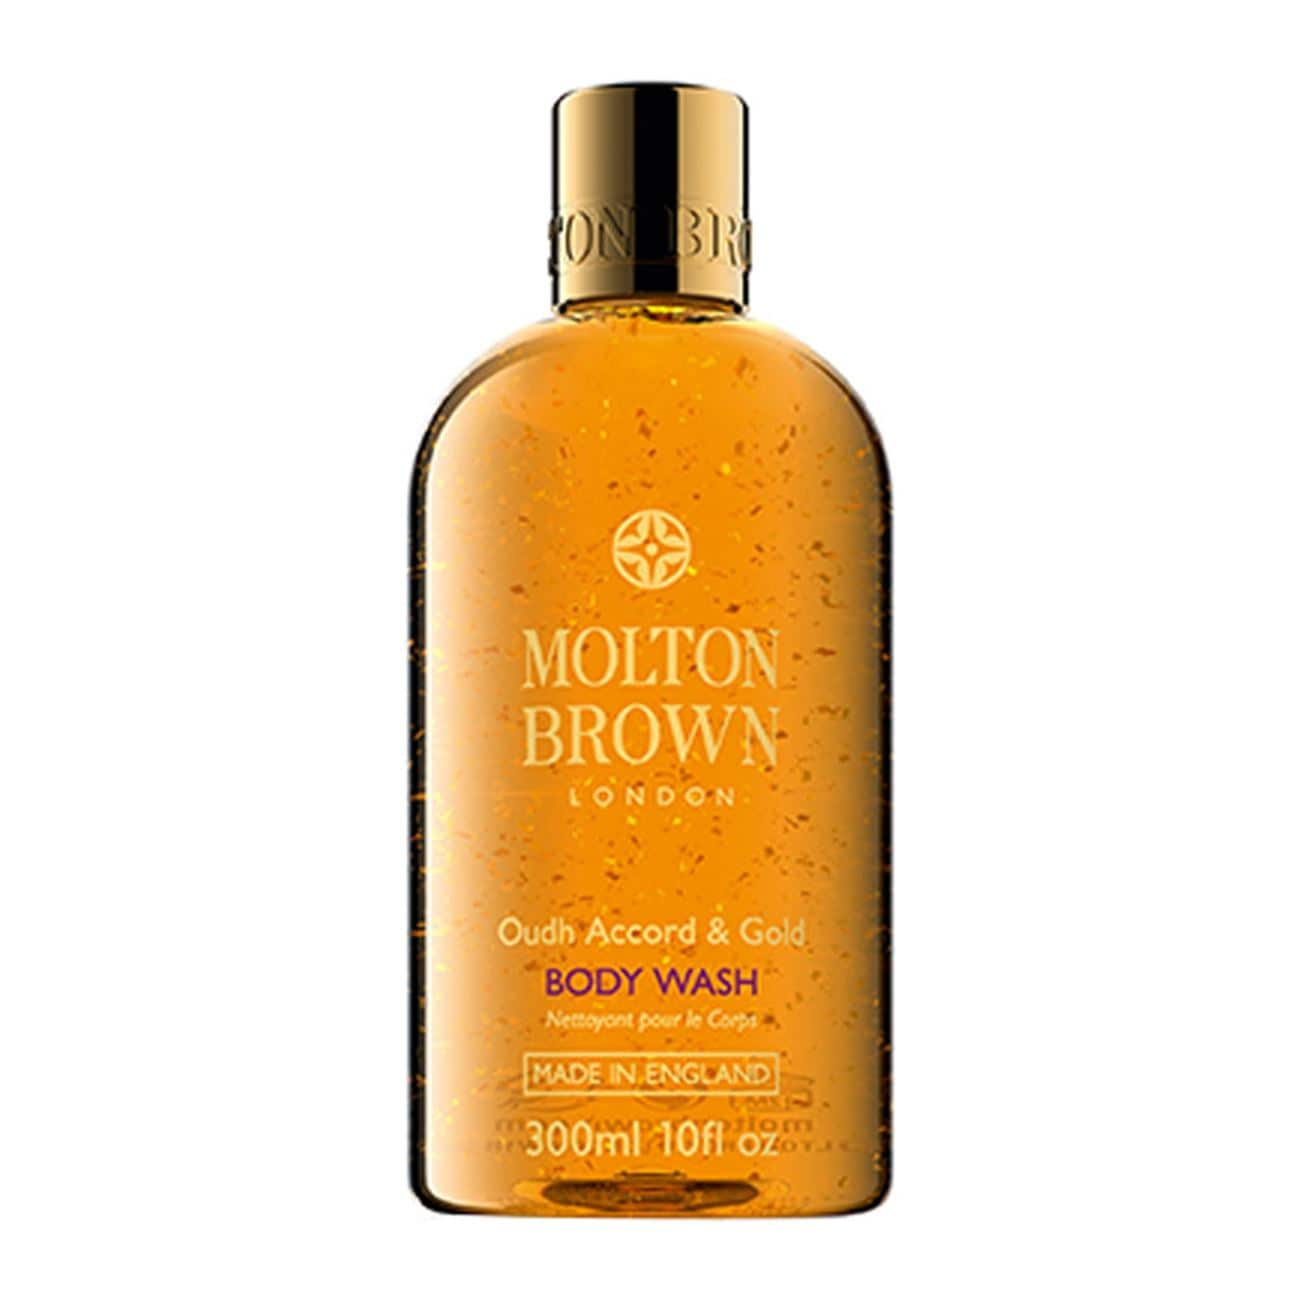 Oudh Accord & Gold Body Wash